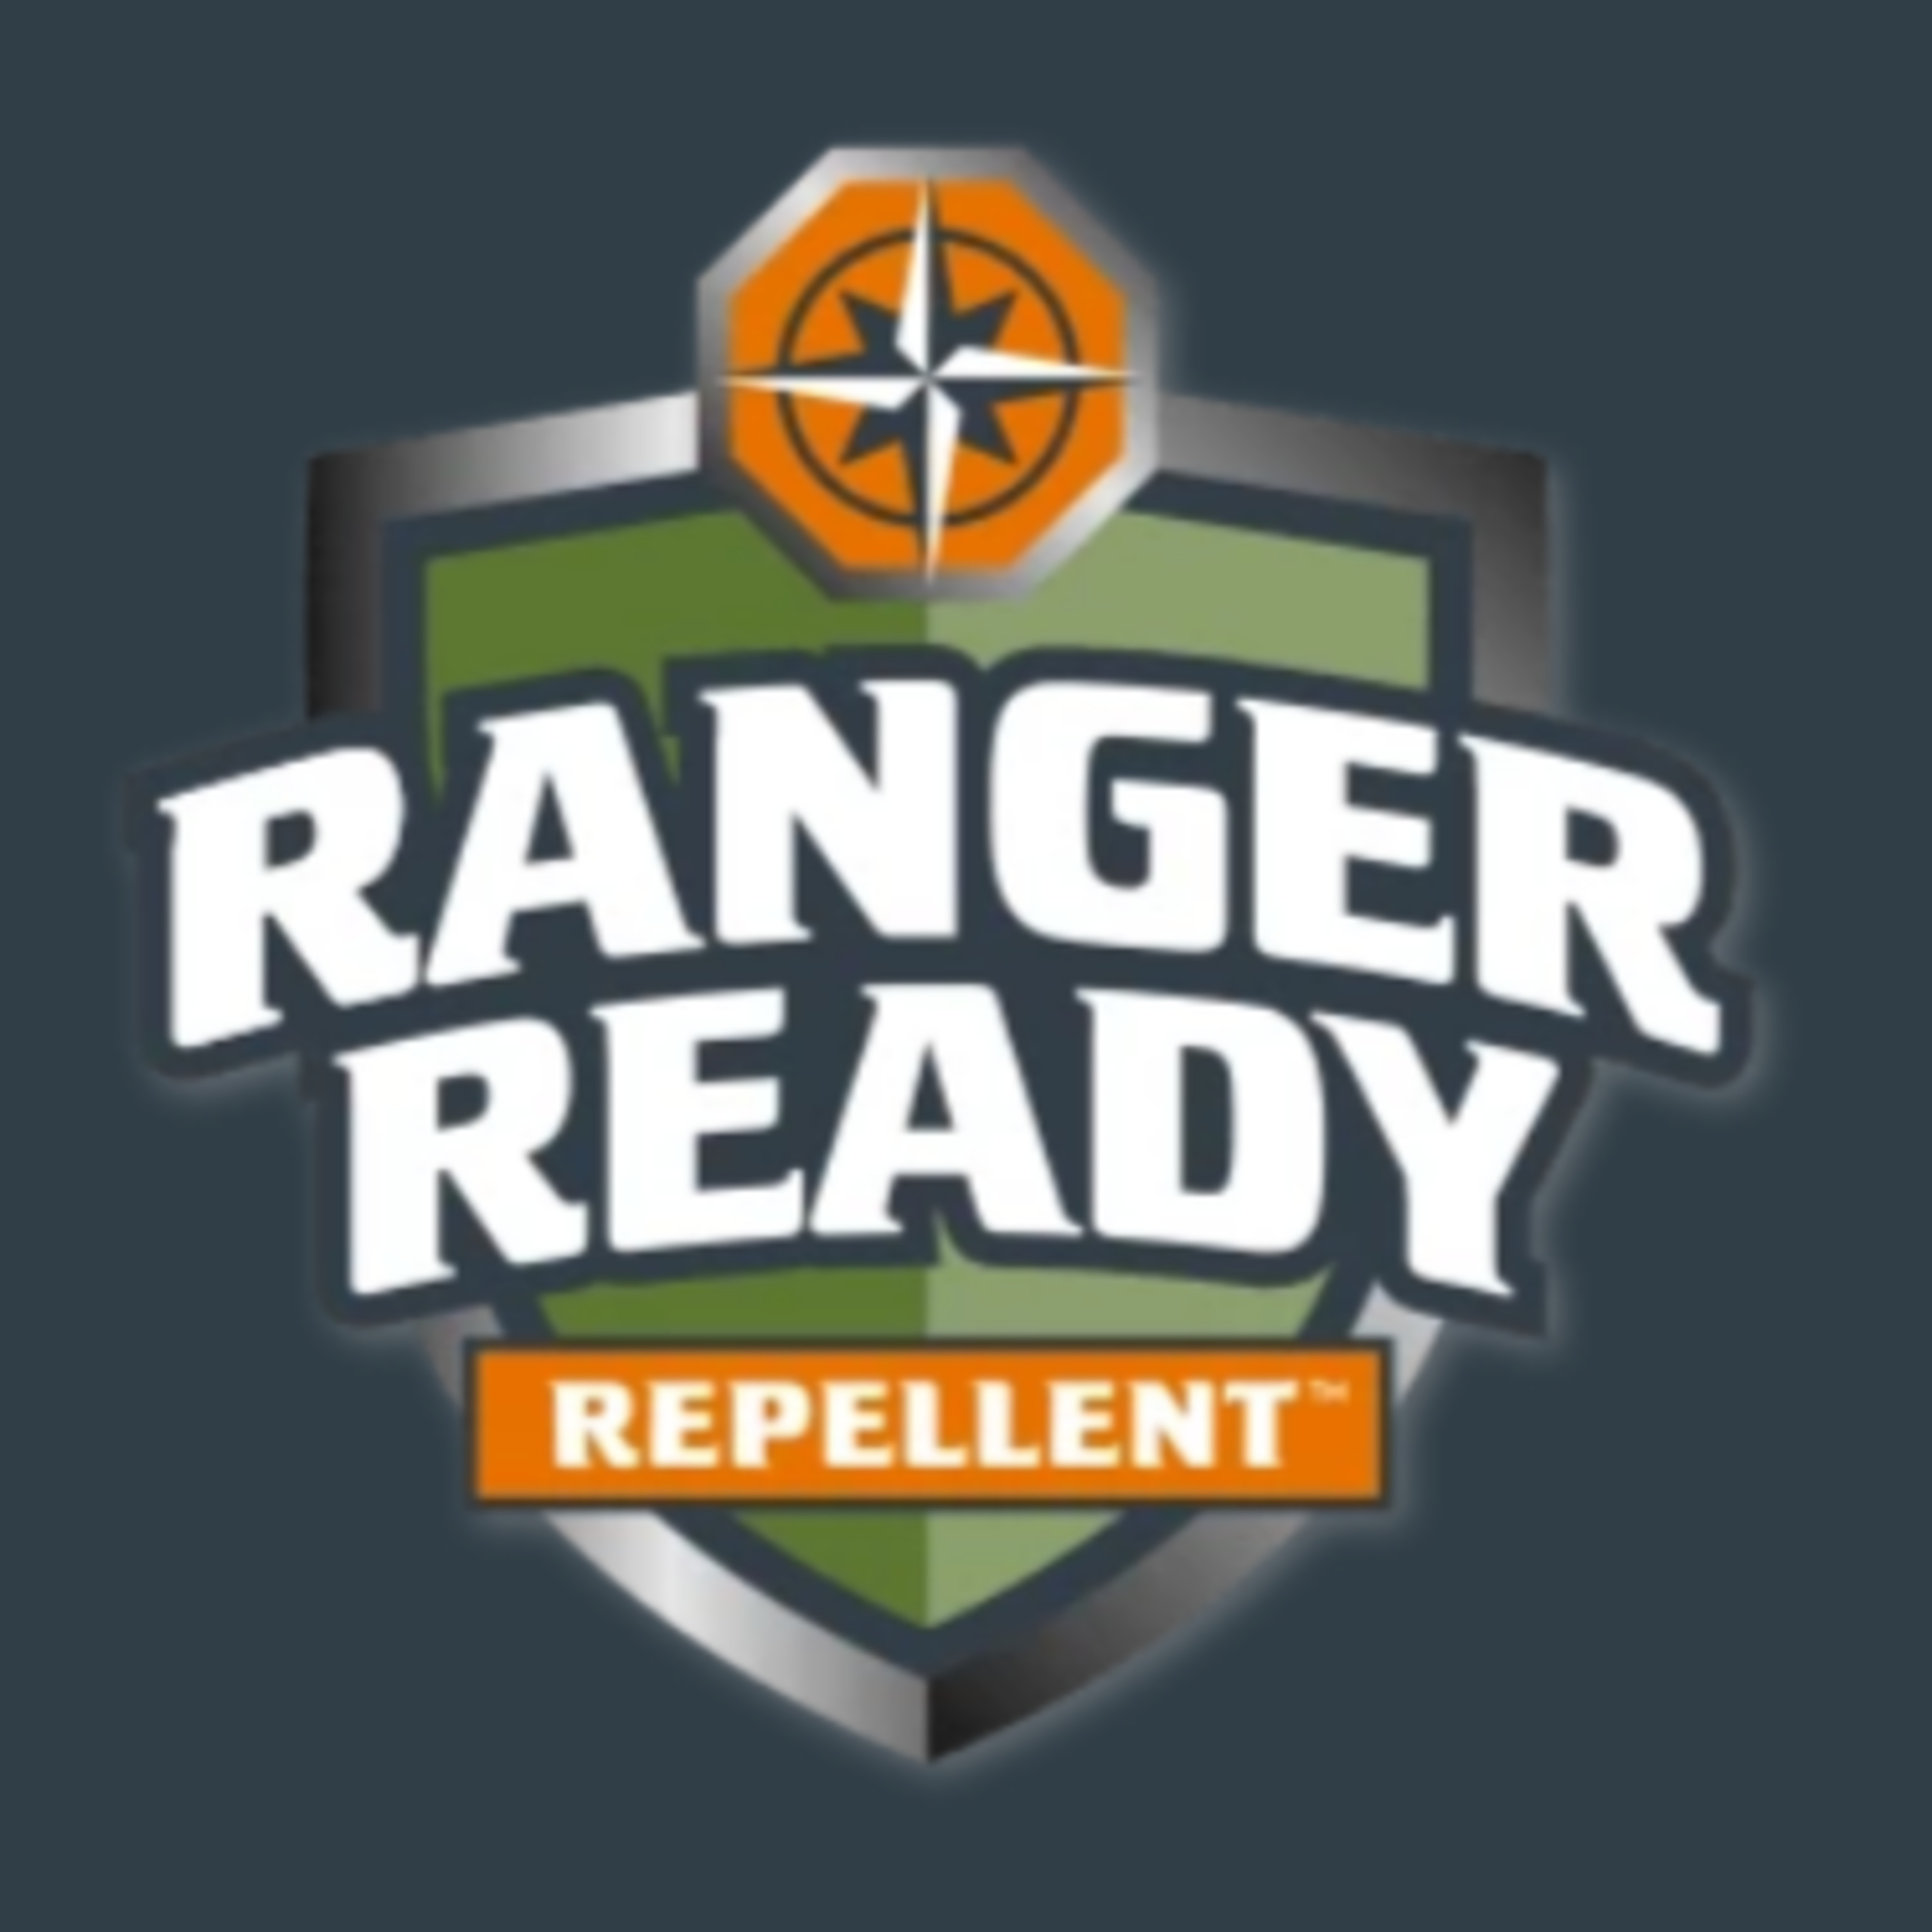 Turning an idea into a successful product | Ranger Ready Repellent